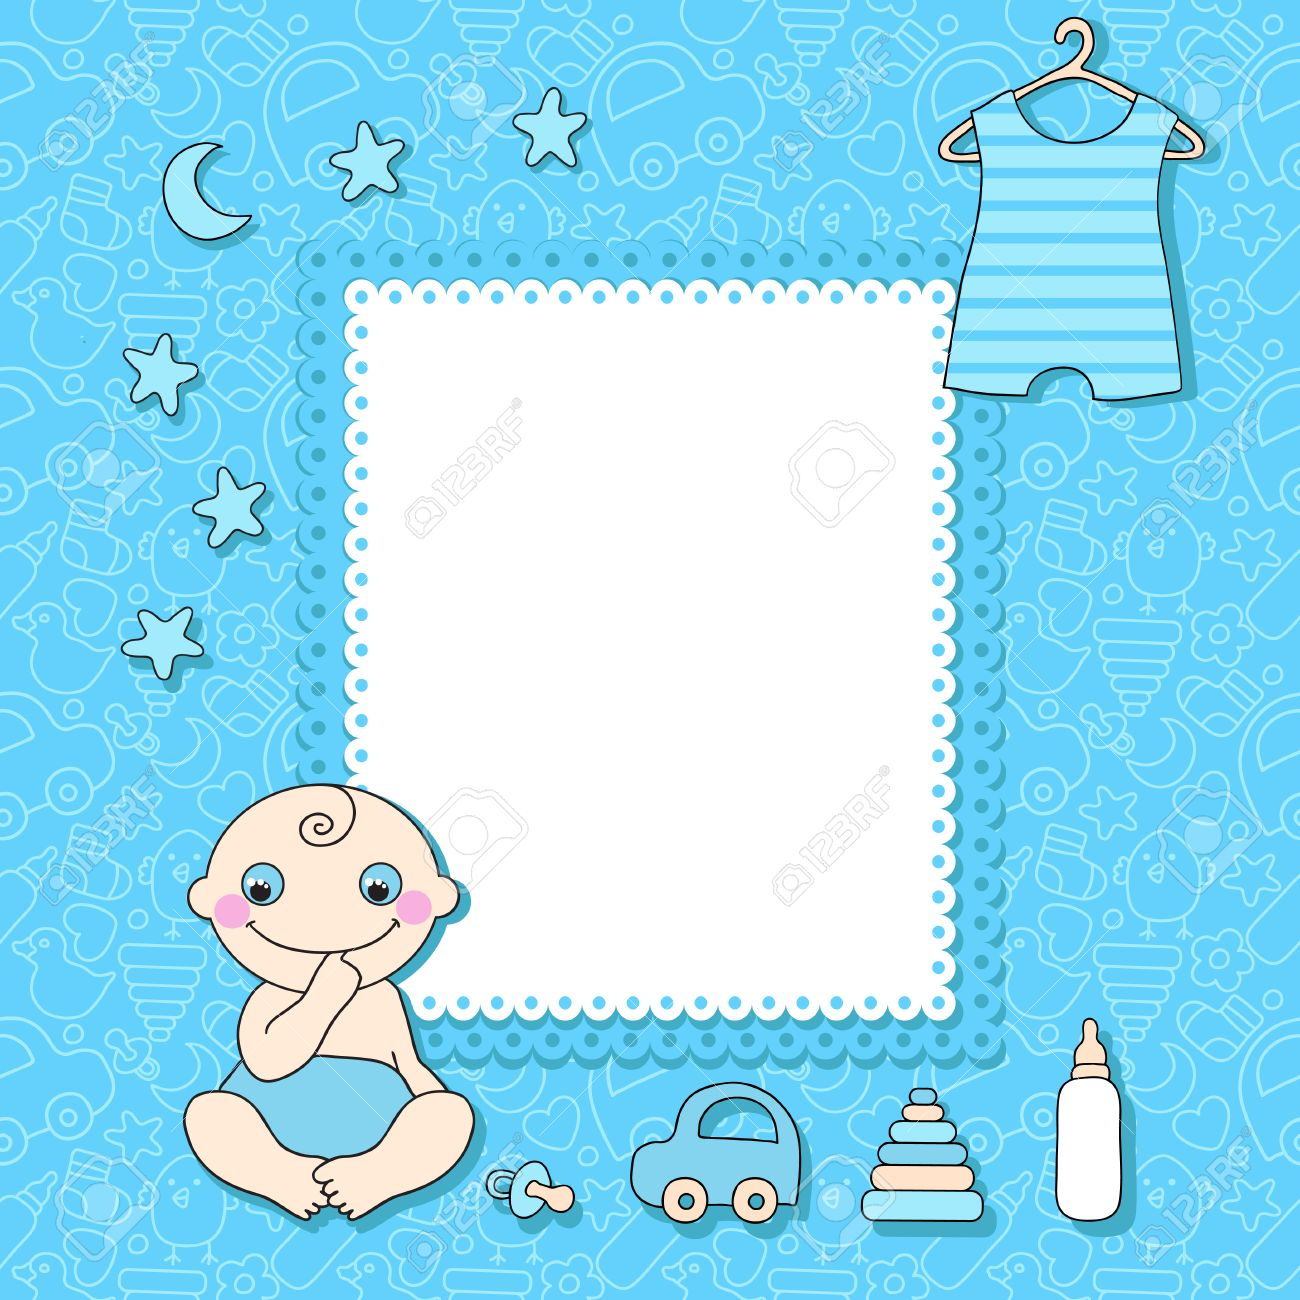 Sweet Baby Boy Announcement Card Style Cartoon Royalty Free ...